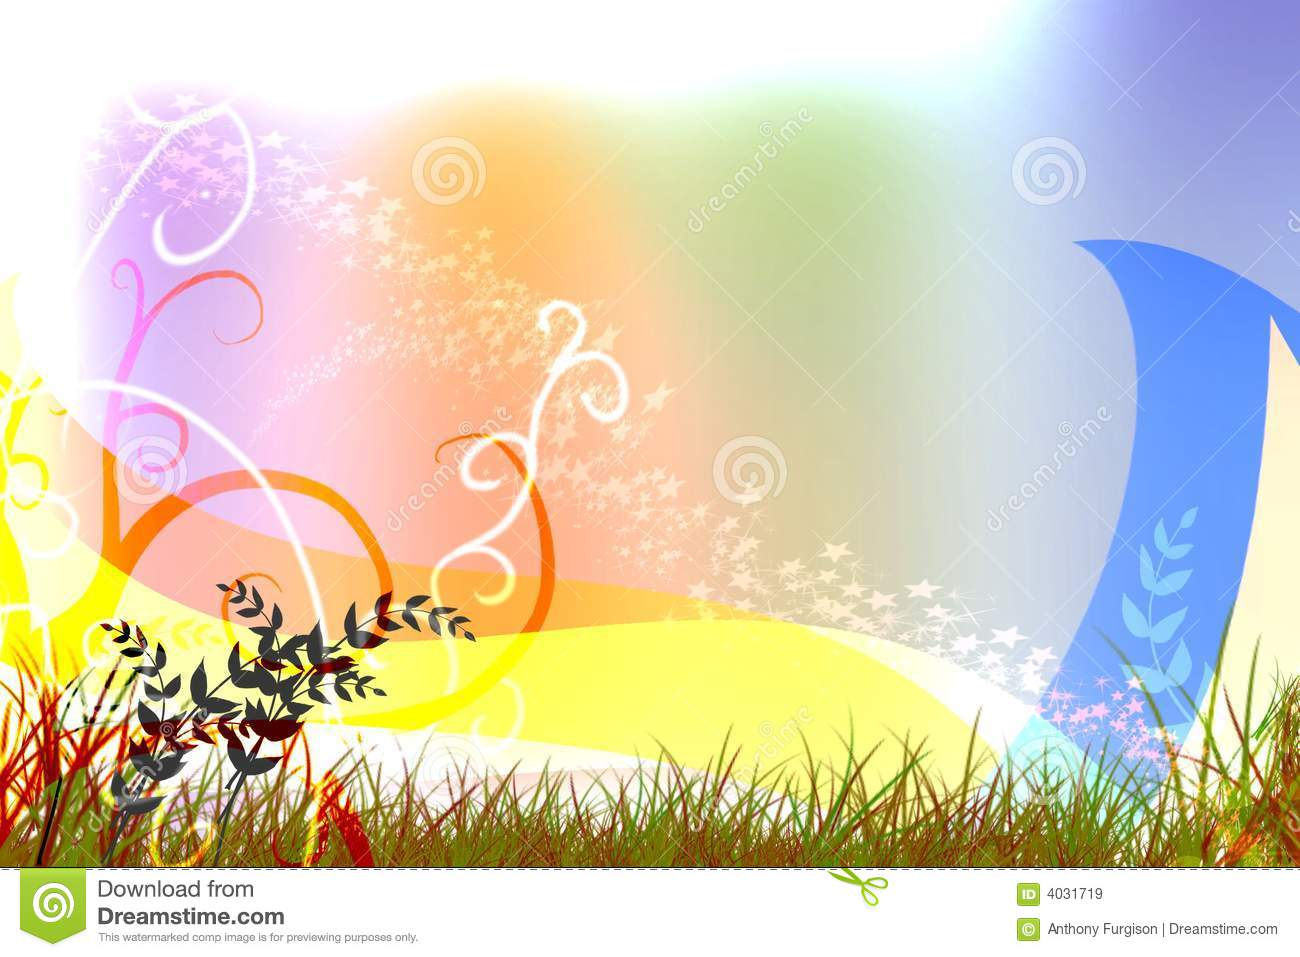 Colorful Background Cover Swirl Design Image Stock